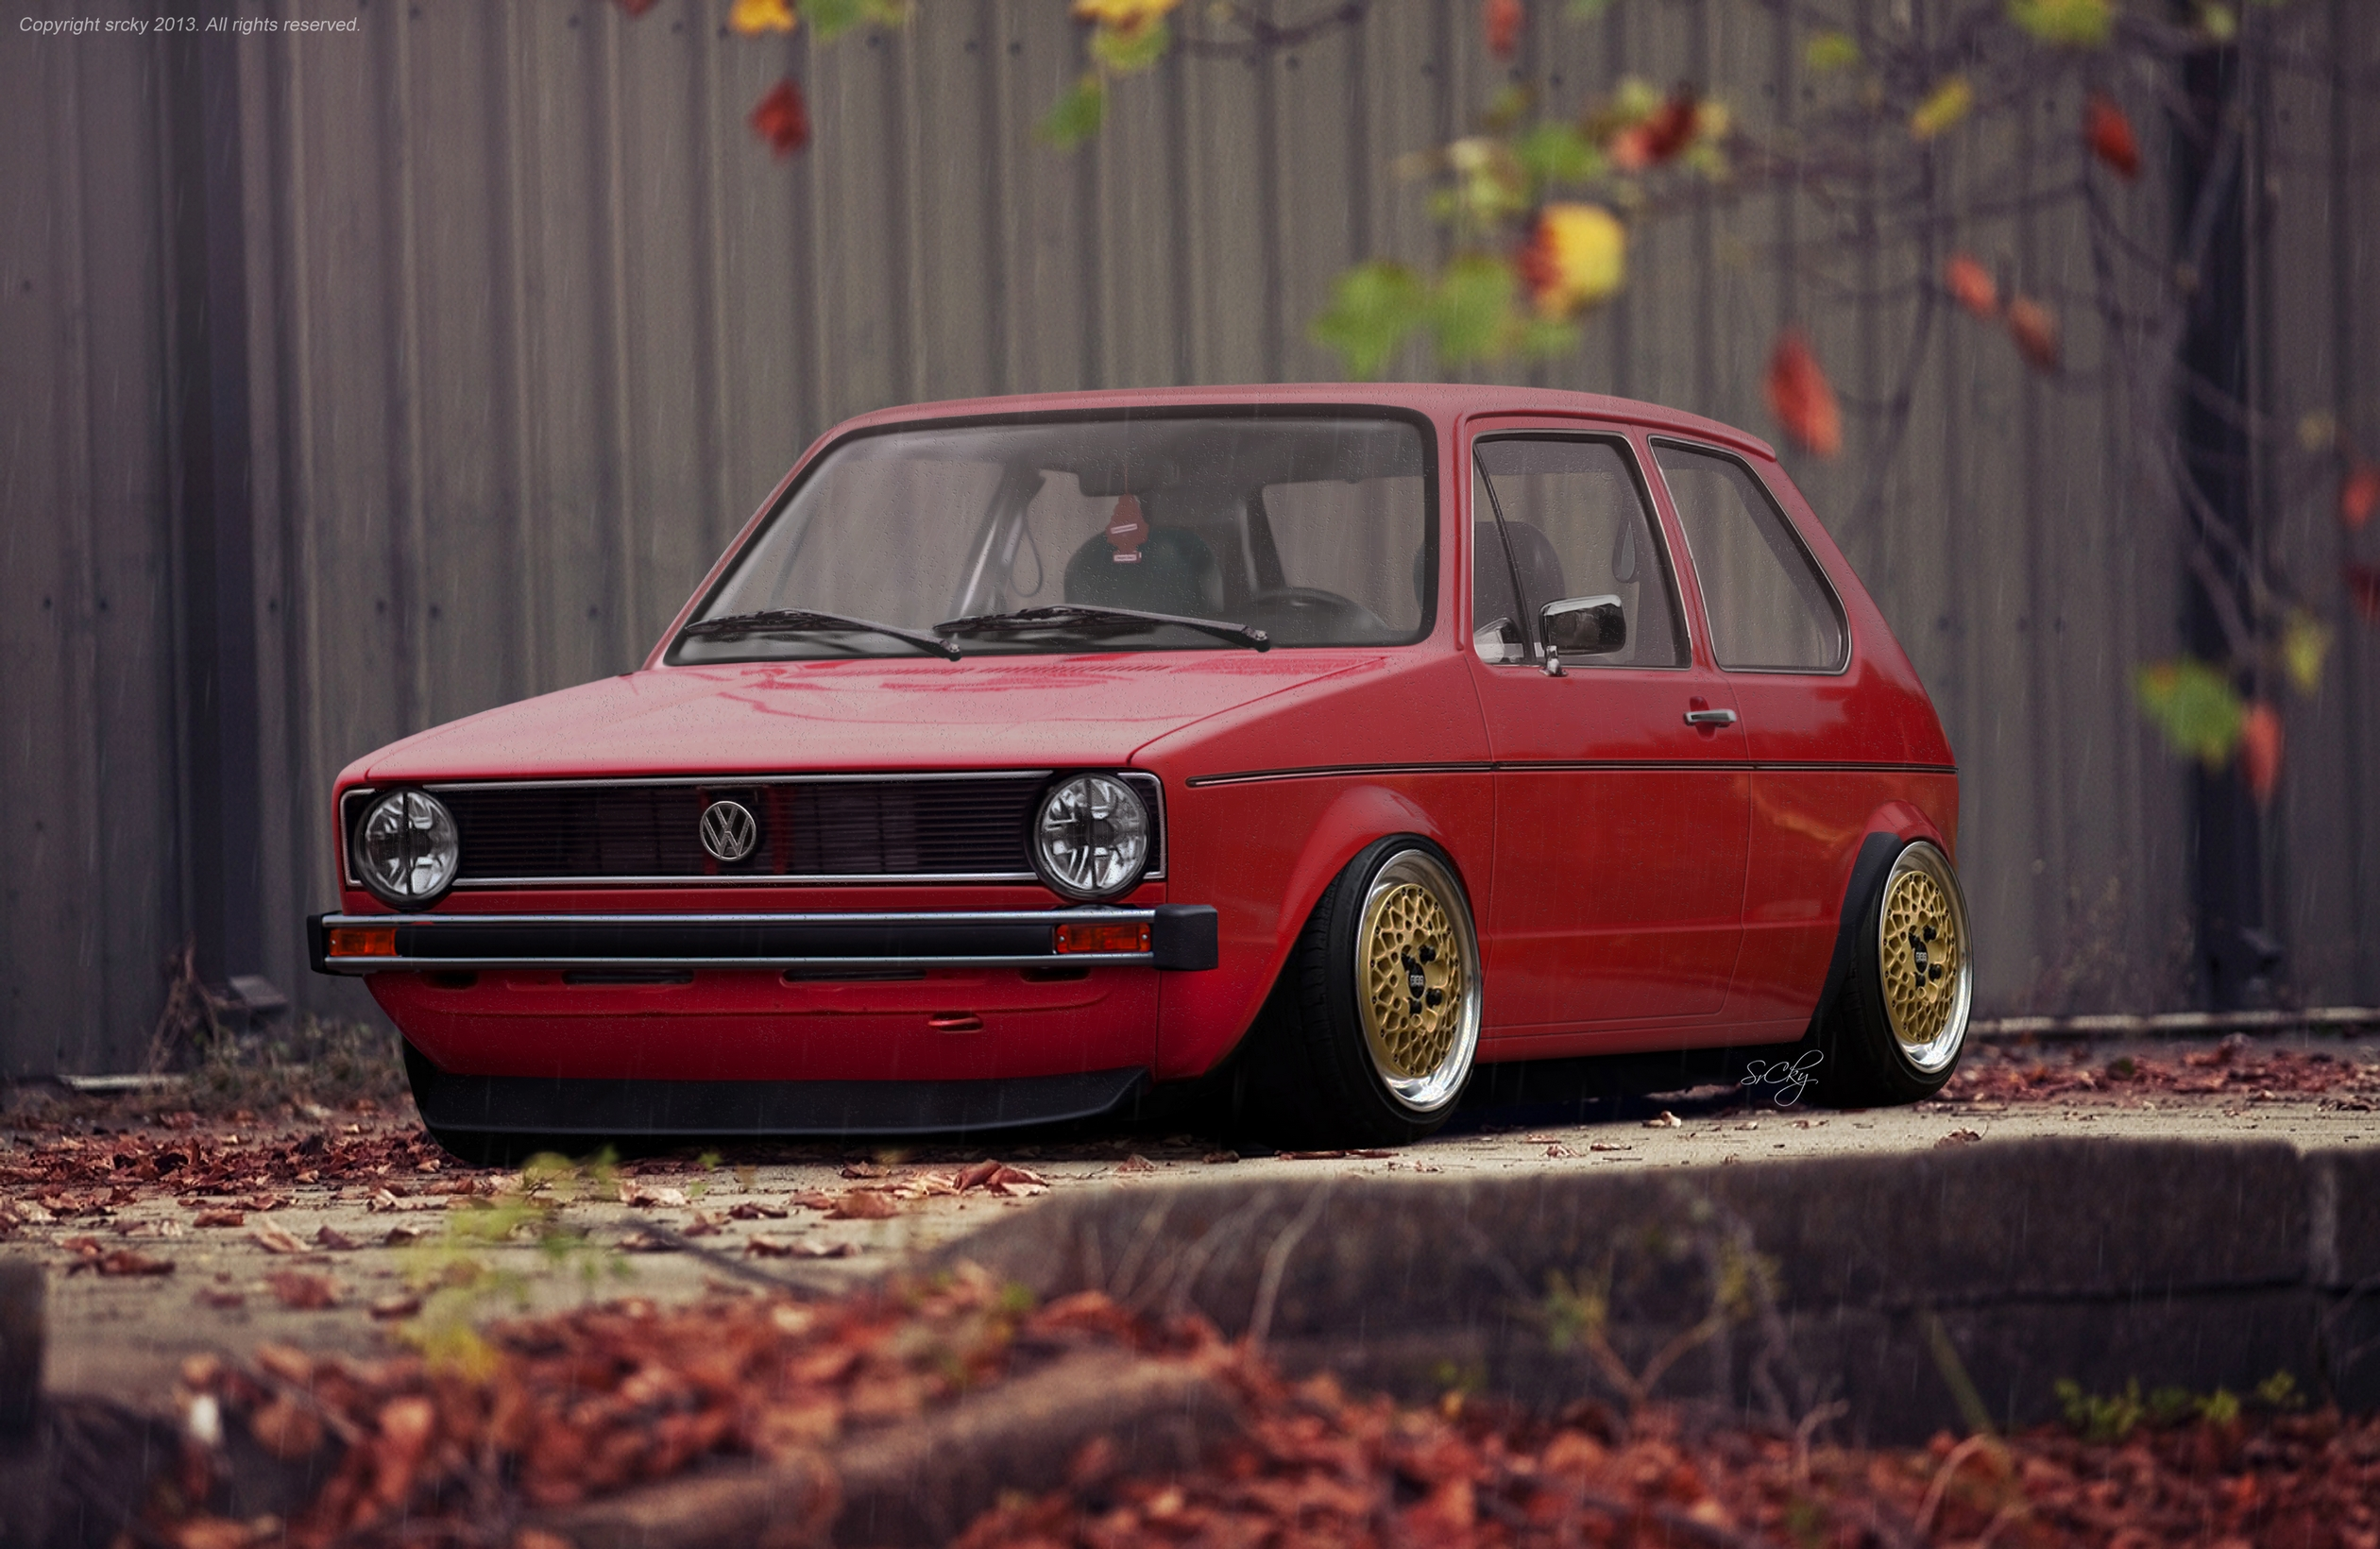 3d Live Wallpaper Hd For Android Download Vw Golf Mk1 Wallpaper Gallery